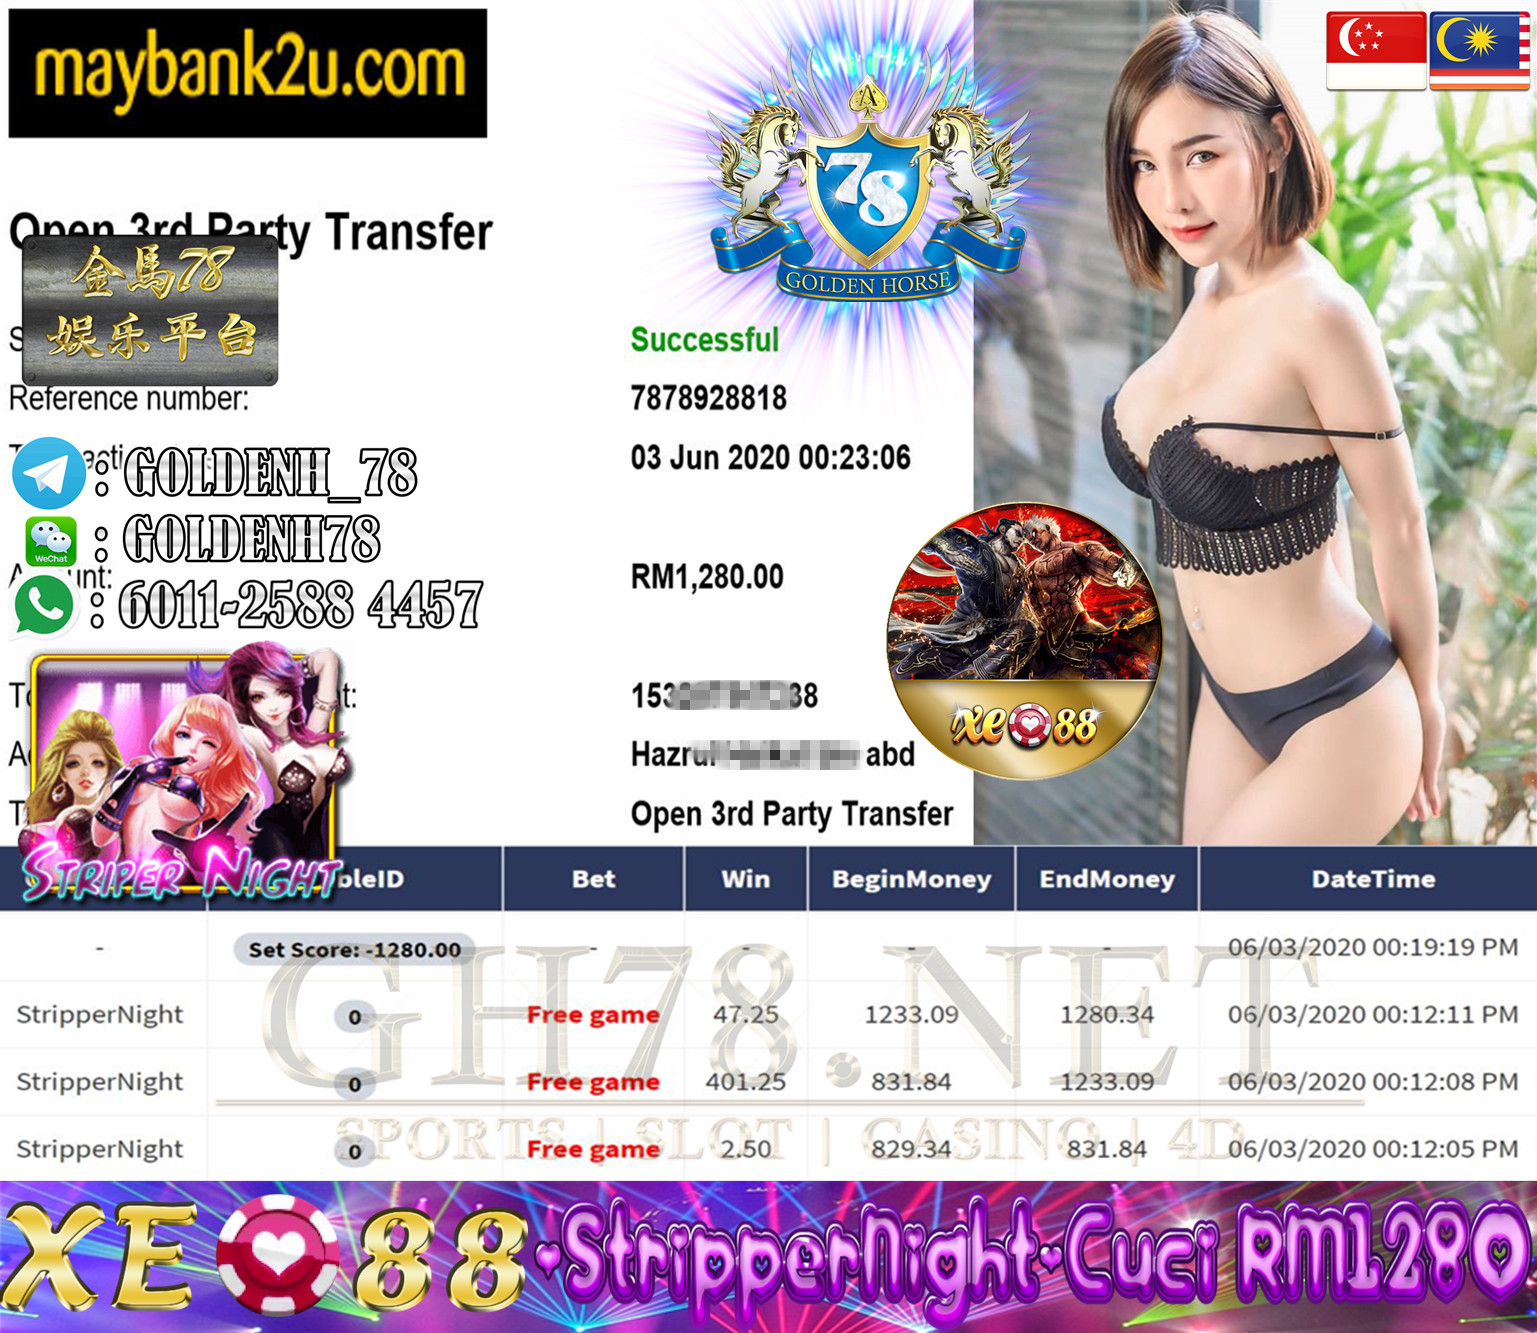 XE88 CUSTOMER MAIN STRIPPERNIGHT MINTA CUCI RM1280!!